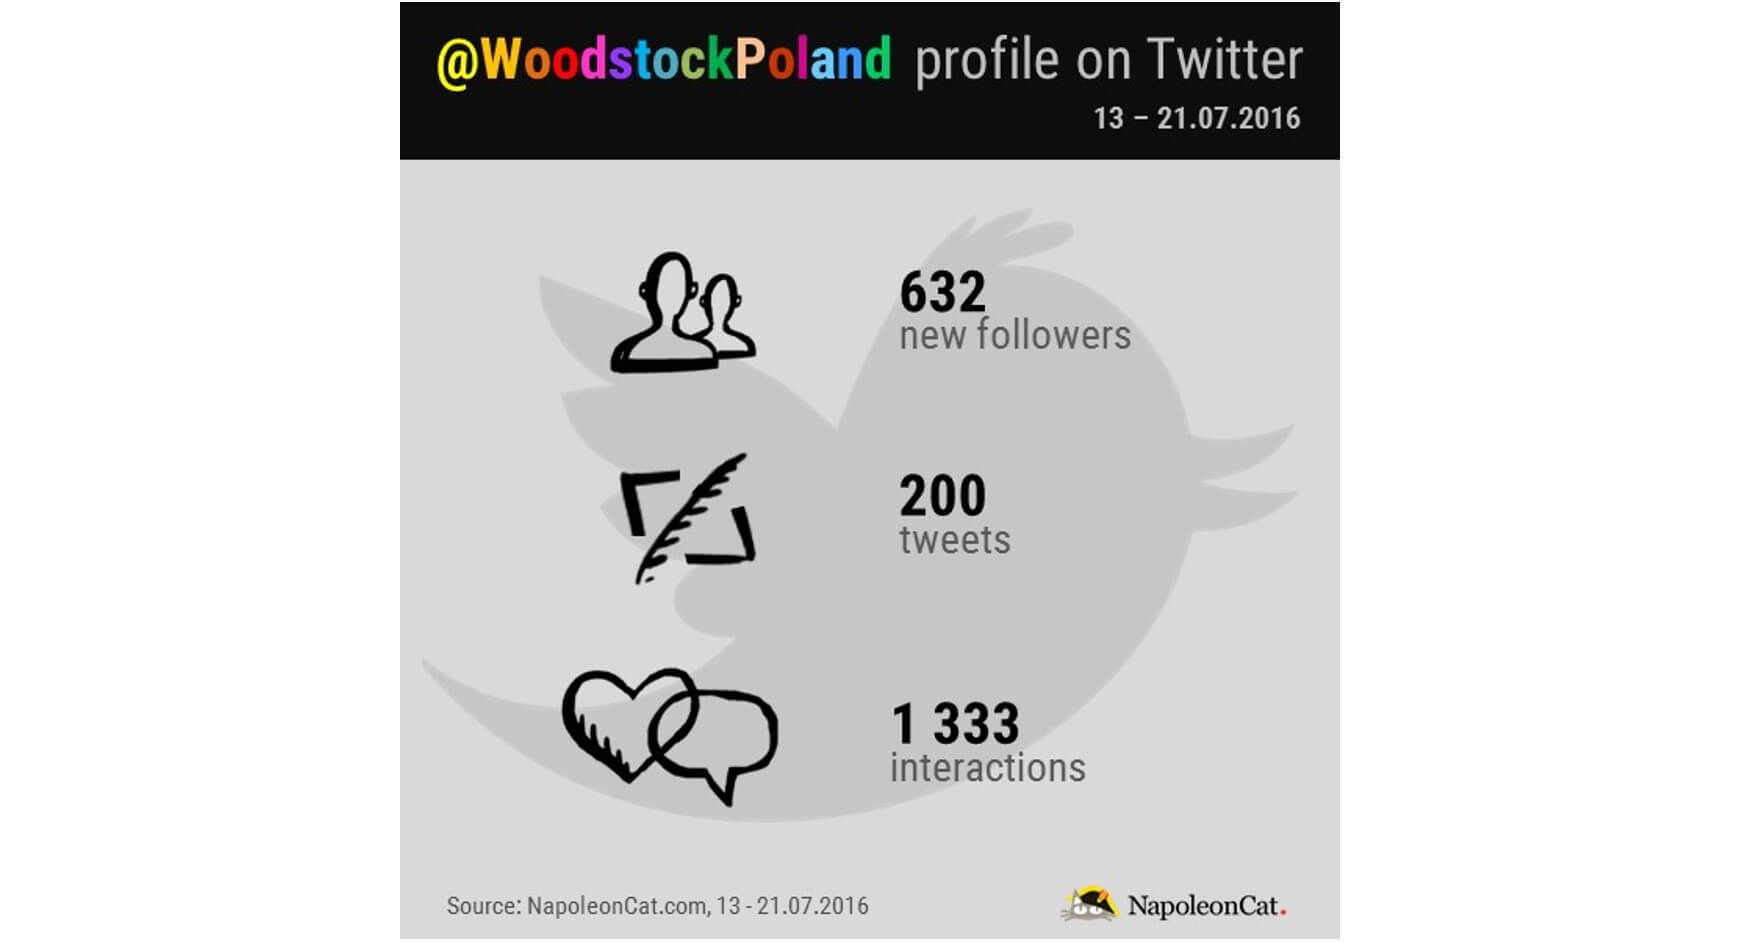 Woodstock Poland on Twitter_NapoleonCat.com blog